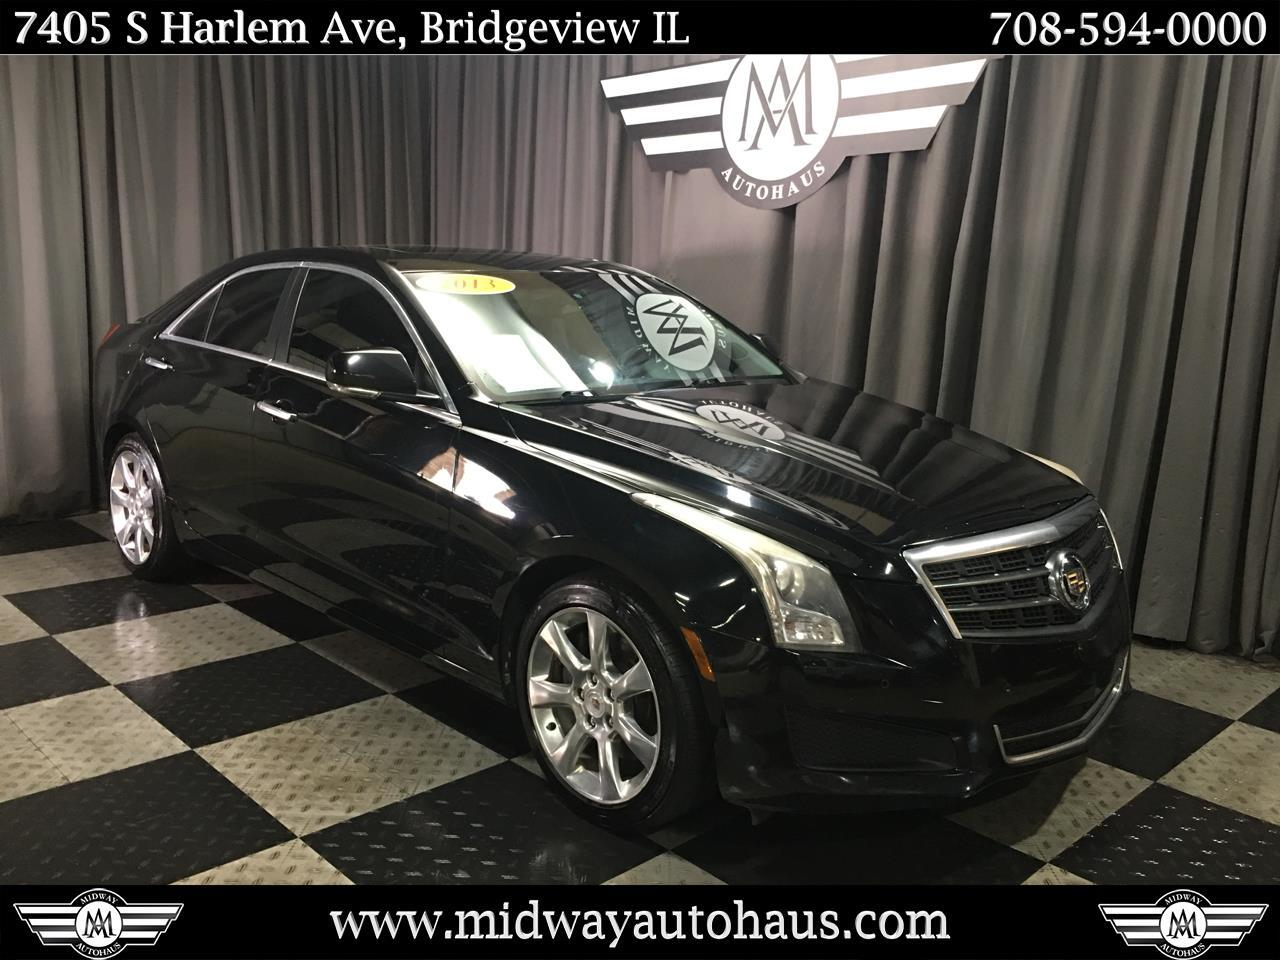 Pre-Owned 2013 Cadillac ATS 4dr Sdn 2.5L Luxury RWD